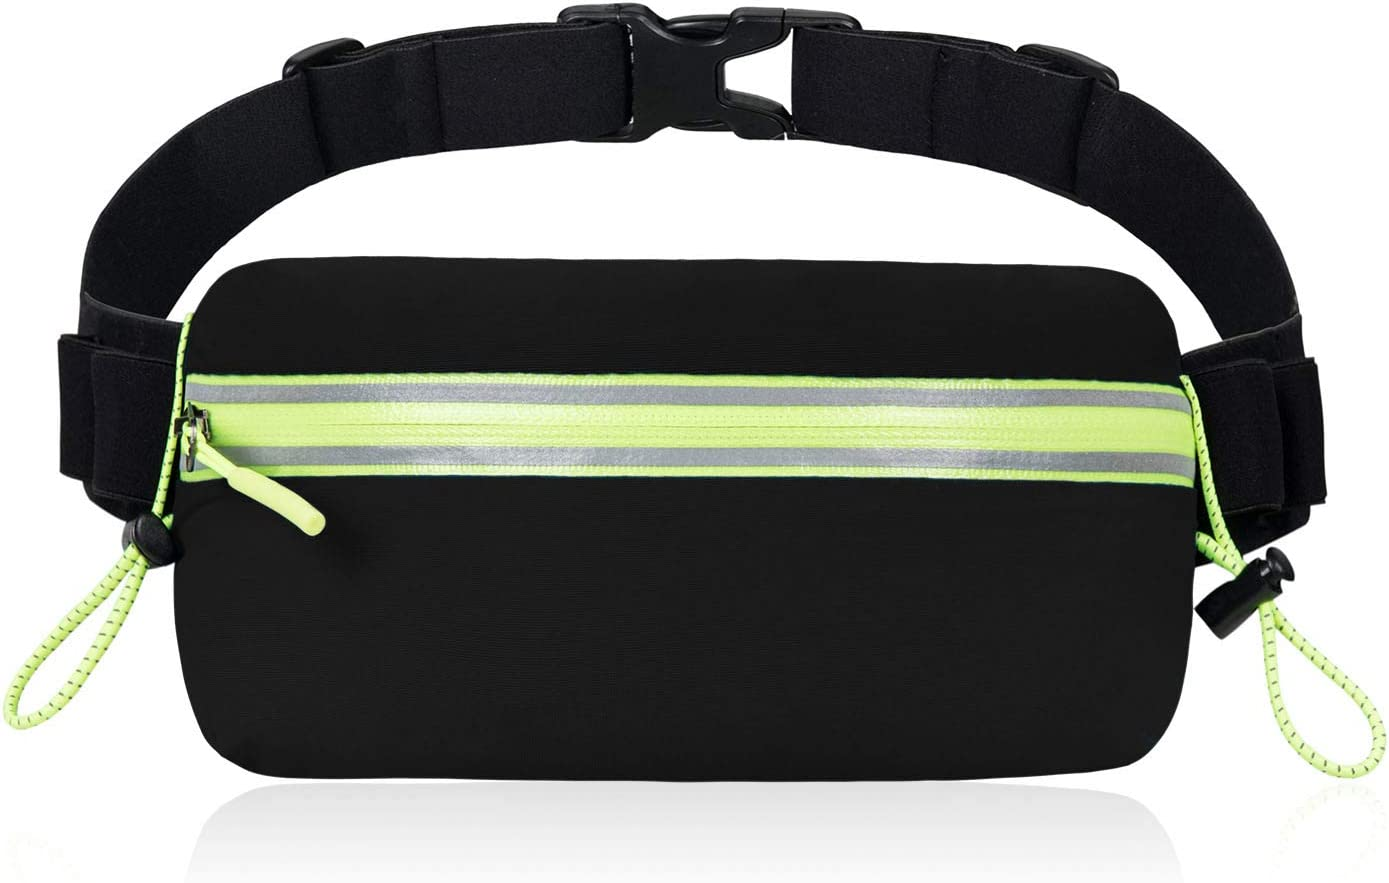 IDAND Running Belt Waist Pack Water Resistant Runners Belt Fanny Pack for Women Men Runners Hiking Stylish Fitness Adjustable Running Pouch Workout Belt Waist Pack for iPhone Xs XR 8 Plus